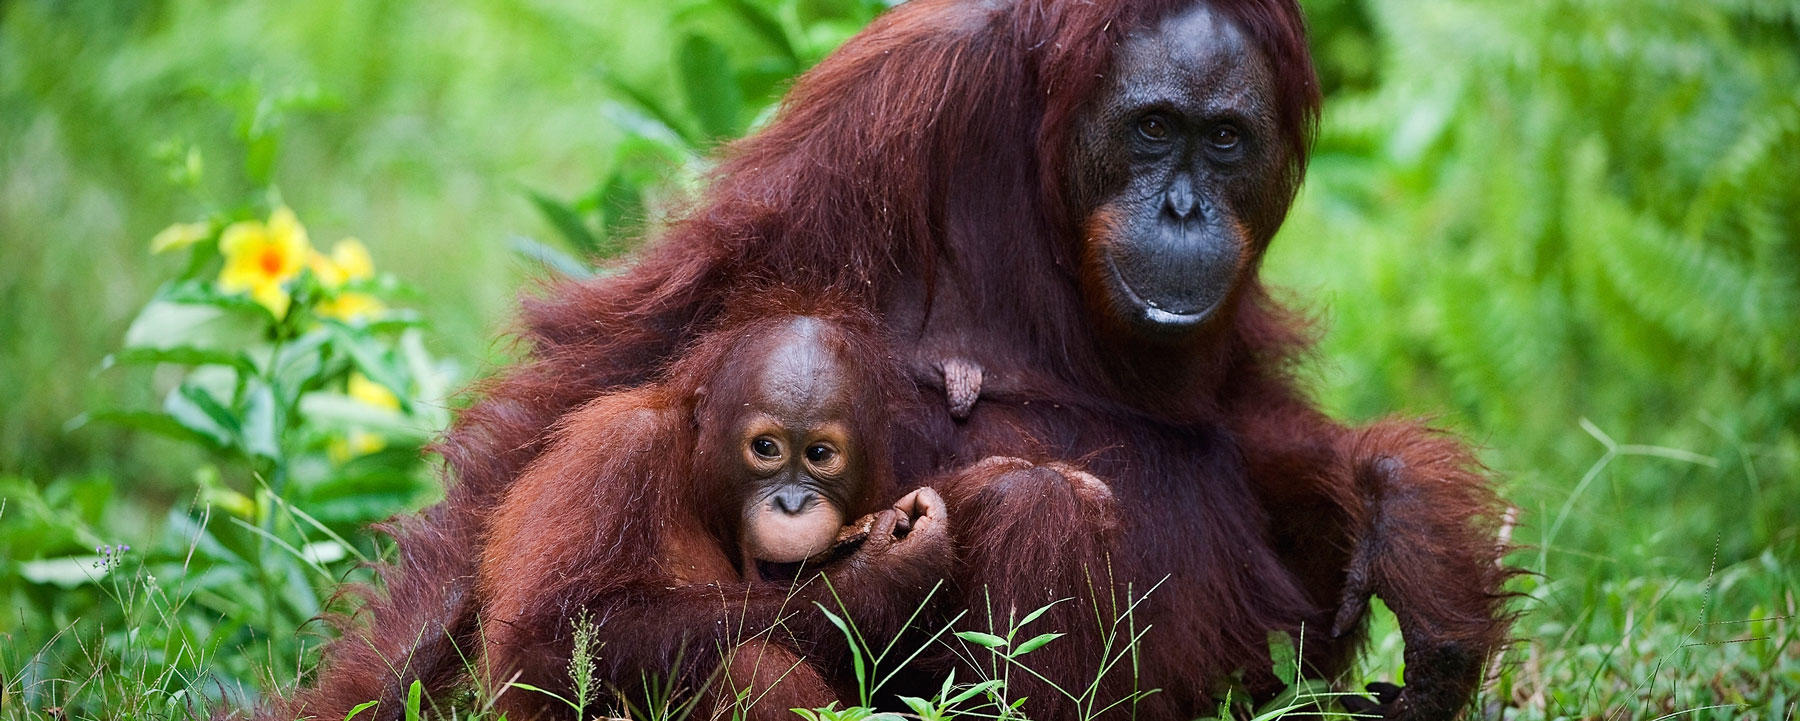 Female orangutan with the baby on a grass